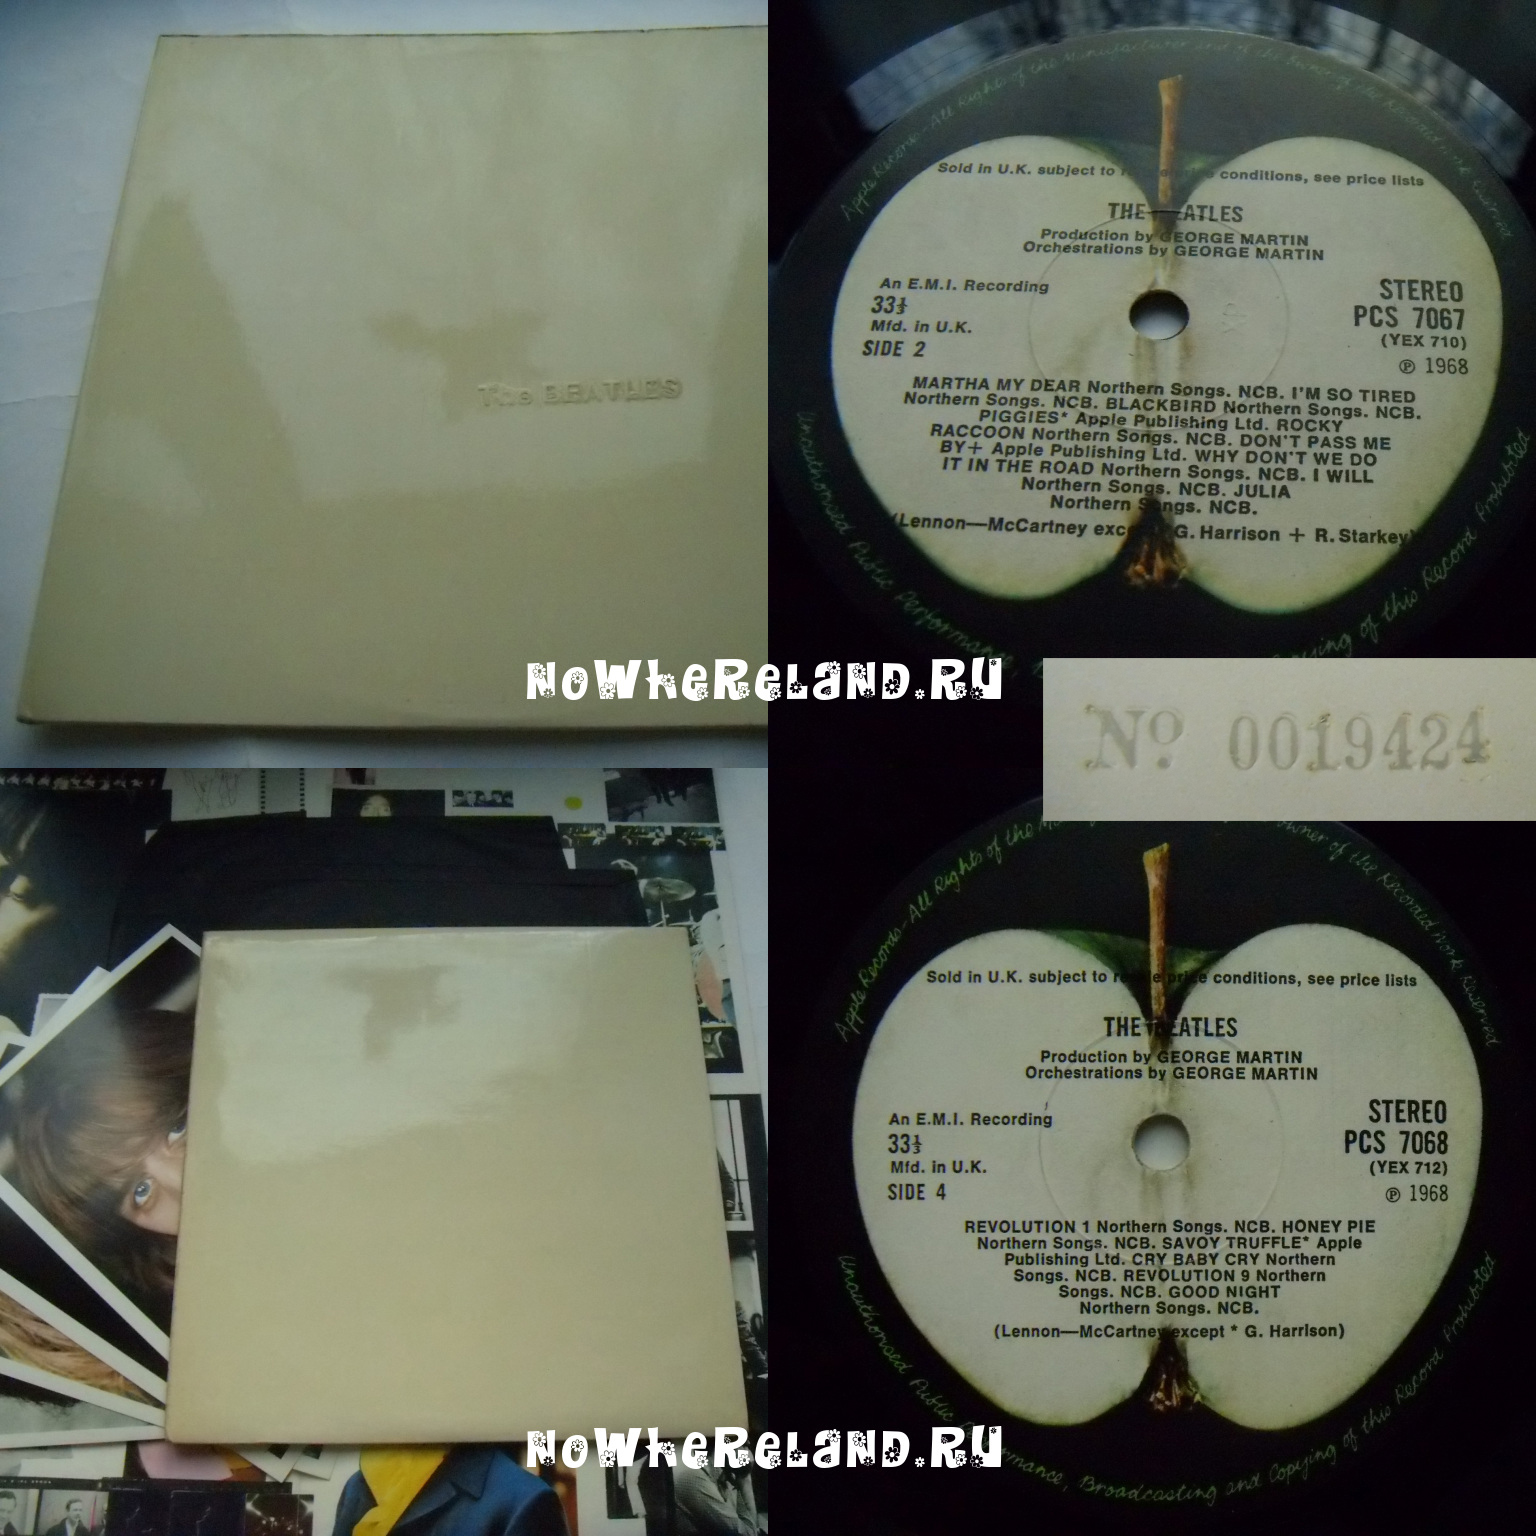 BEATLES The Beatles (White Album, No 19424, XP tax code)